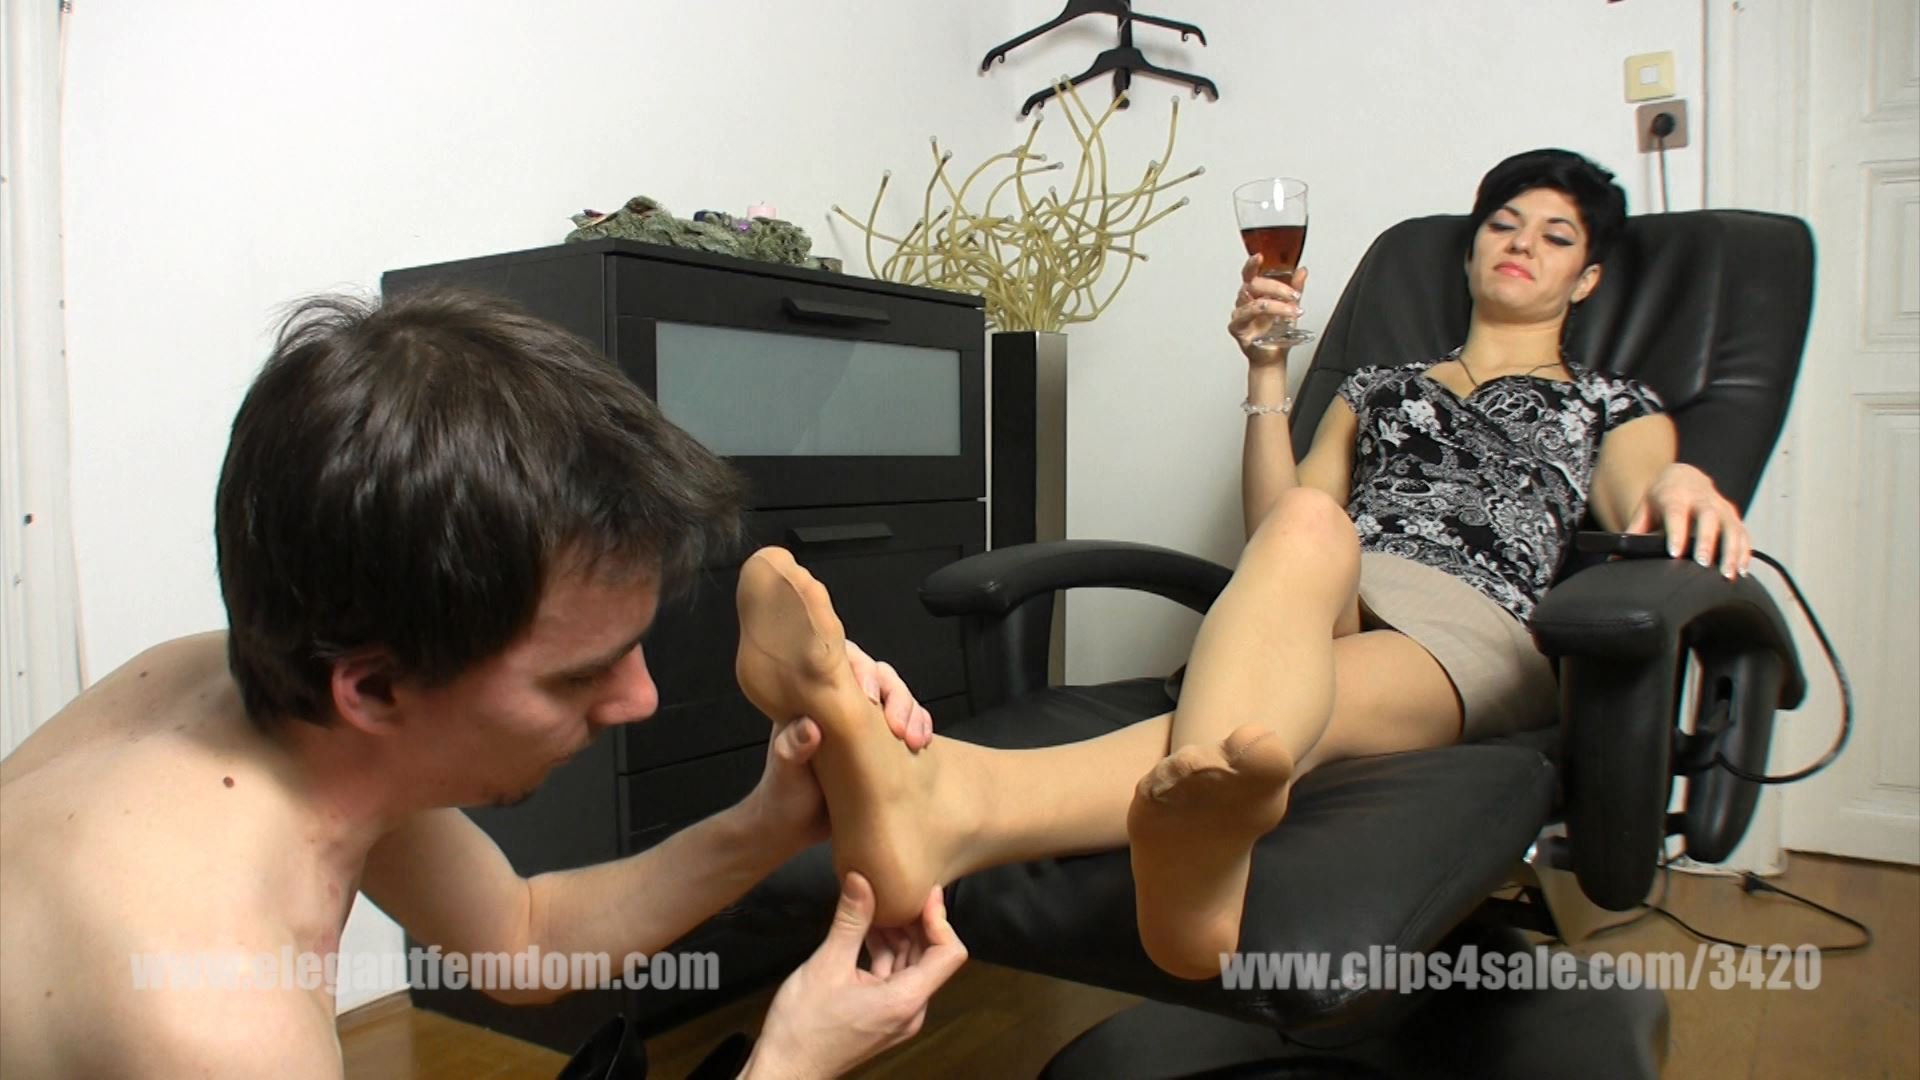 Roxanne sits in a massage chair and commands the slave - ELEGANTFEMDOM - FULL HD/1080p/MP4